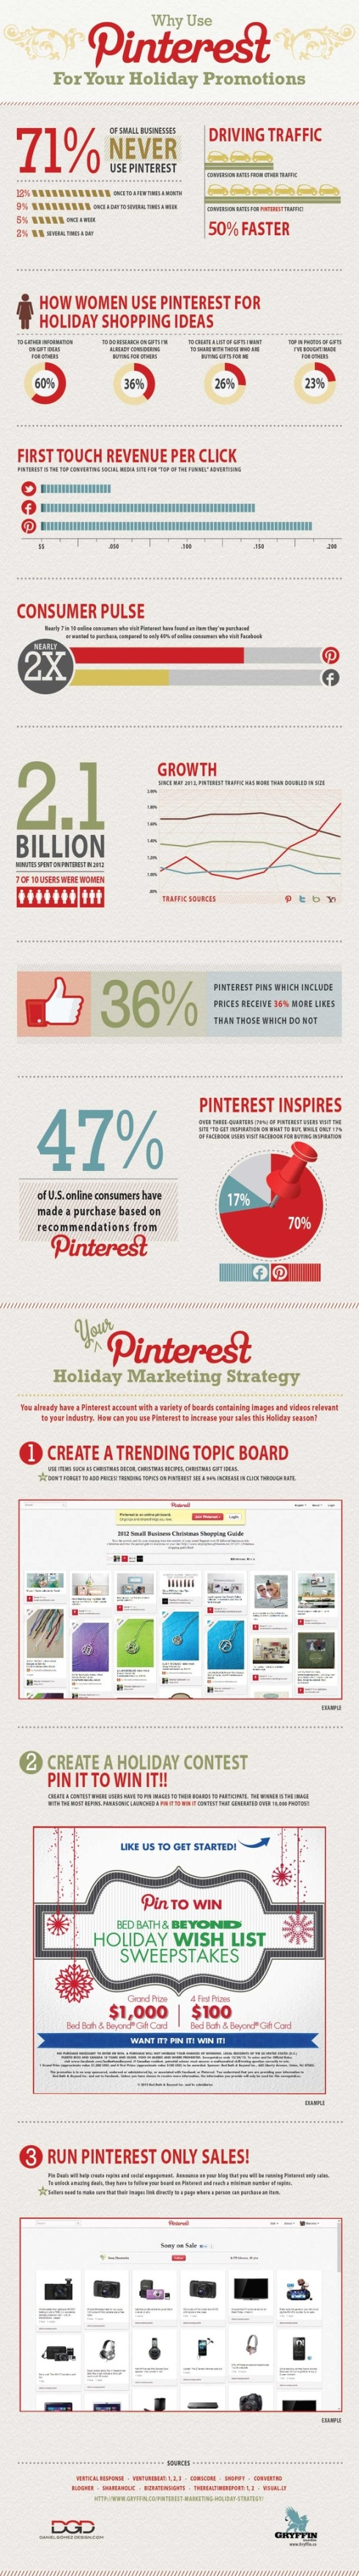 Why Use Pinterest for Holiday Promotions?